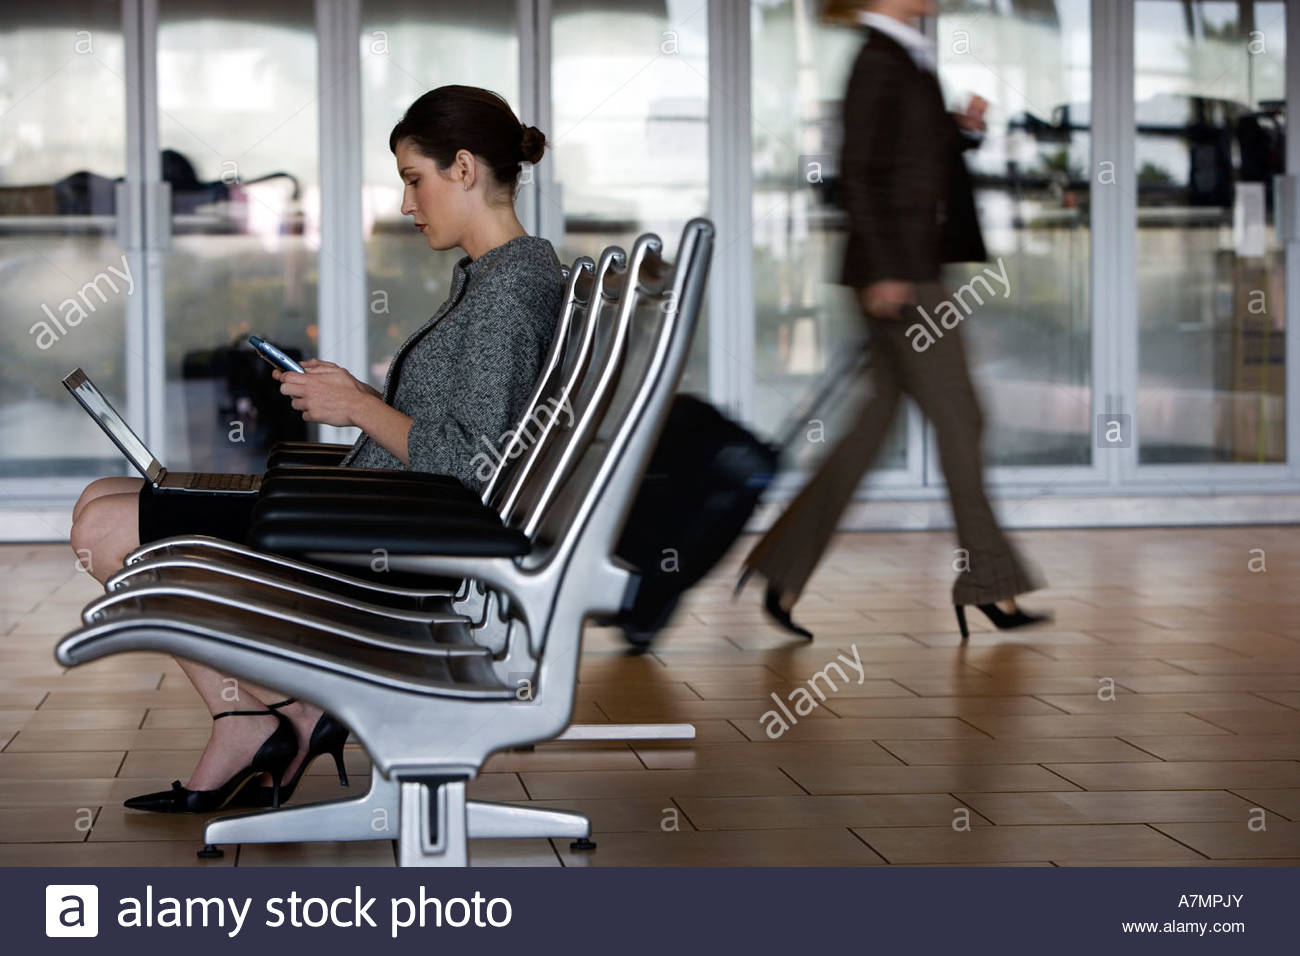 Businesswoman sitting in waiting area using laptop and electronic organiser profile Stock Photo